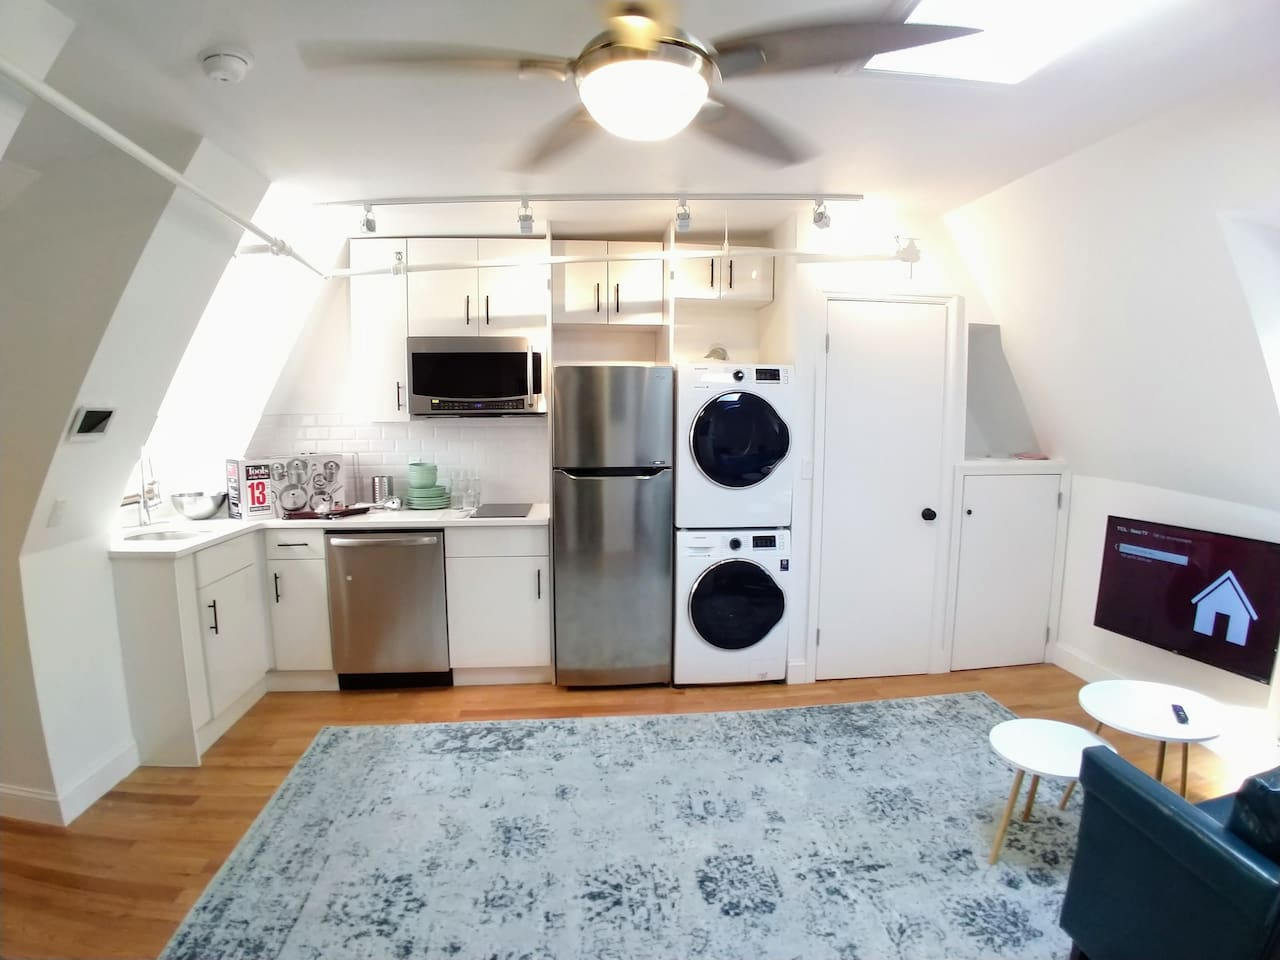 Penthouse, Full Kitchen, Washer & Dryer, Private Outdoor Space!